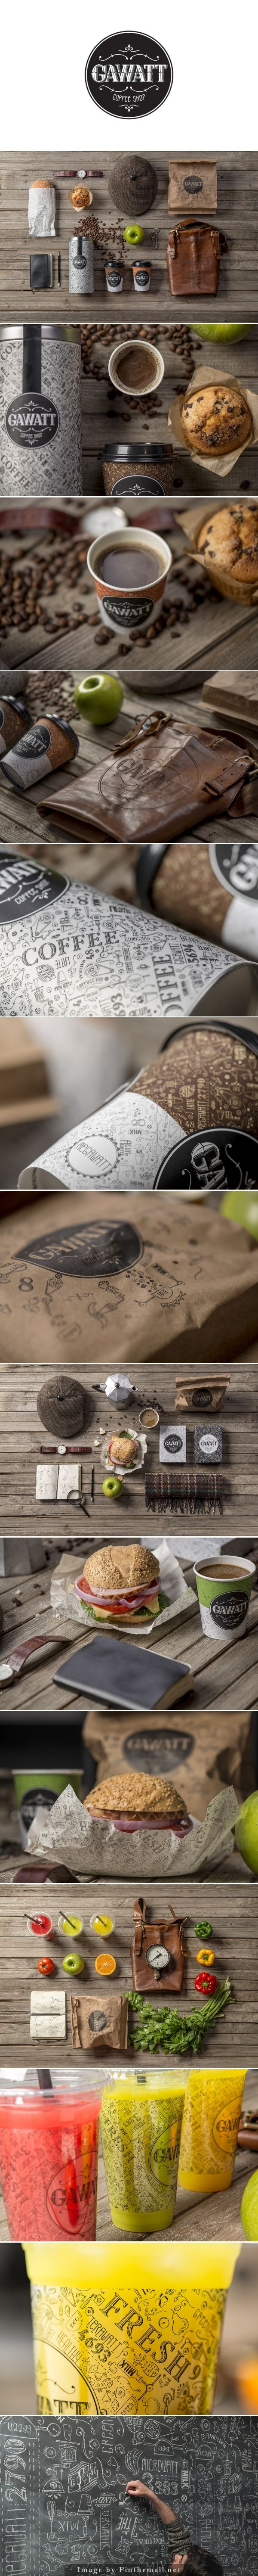 Coffee Shop Branding: Gawatt Take-Out Coffee created by Stepan Azaryan, Karen Gevorgyan and Armenak Grigoryan